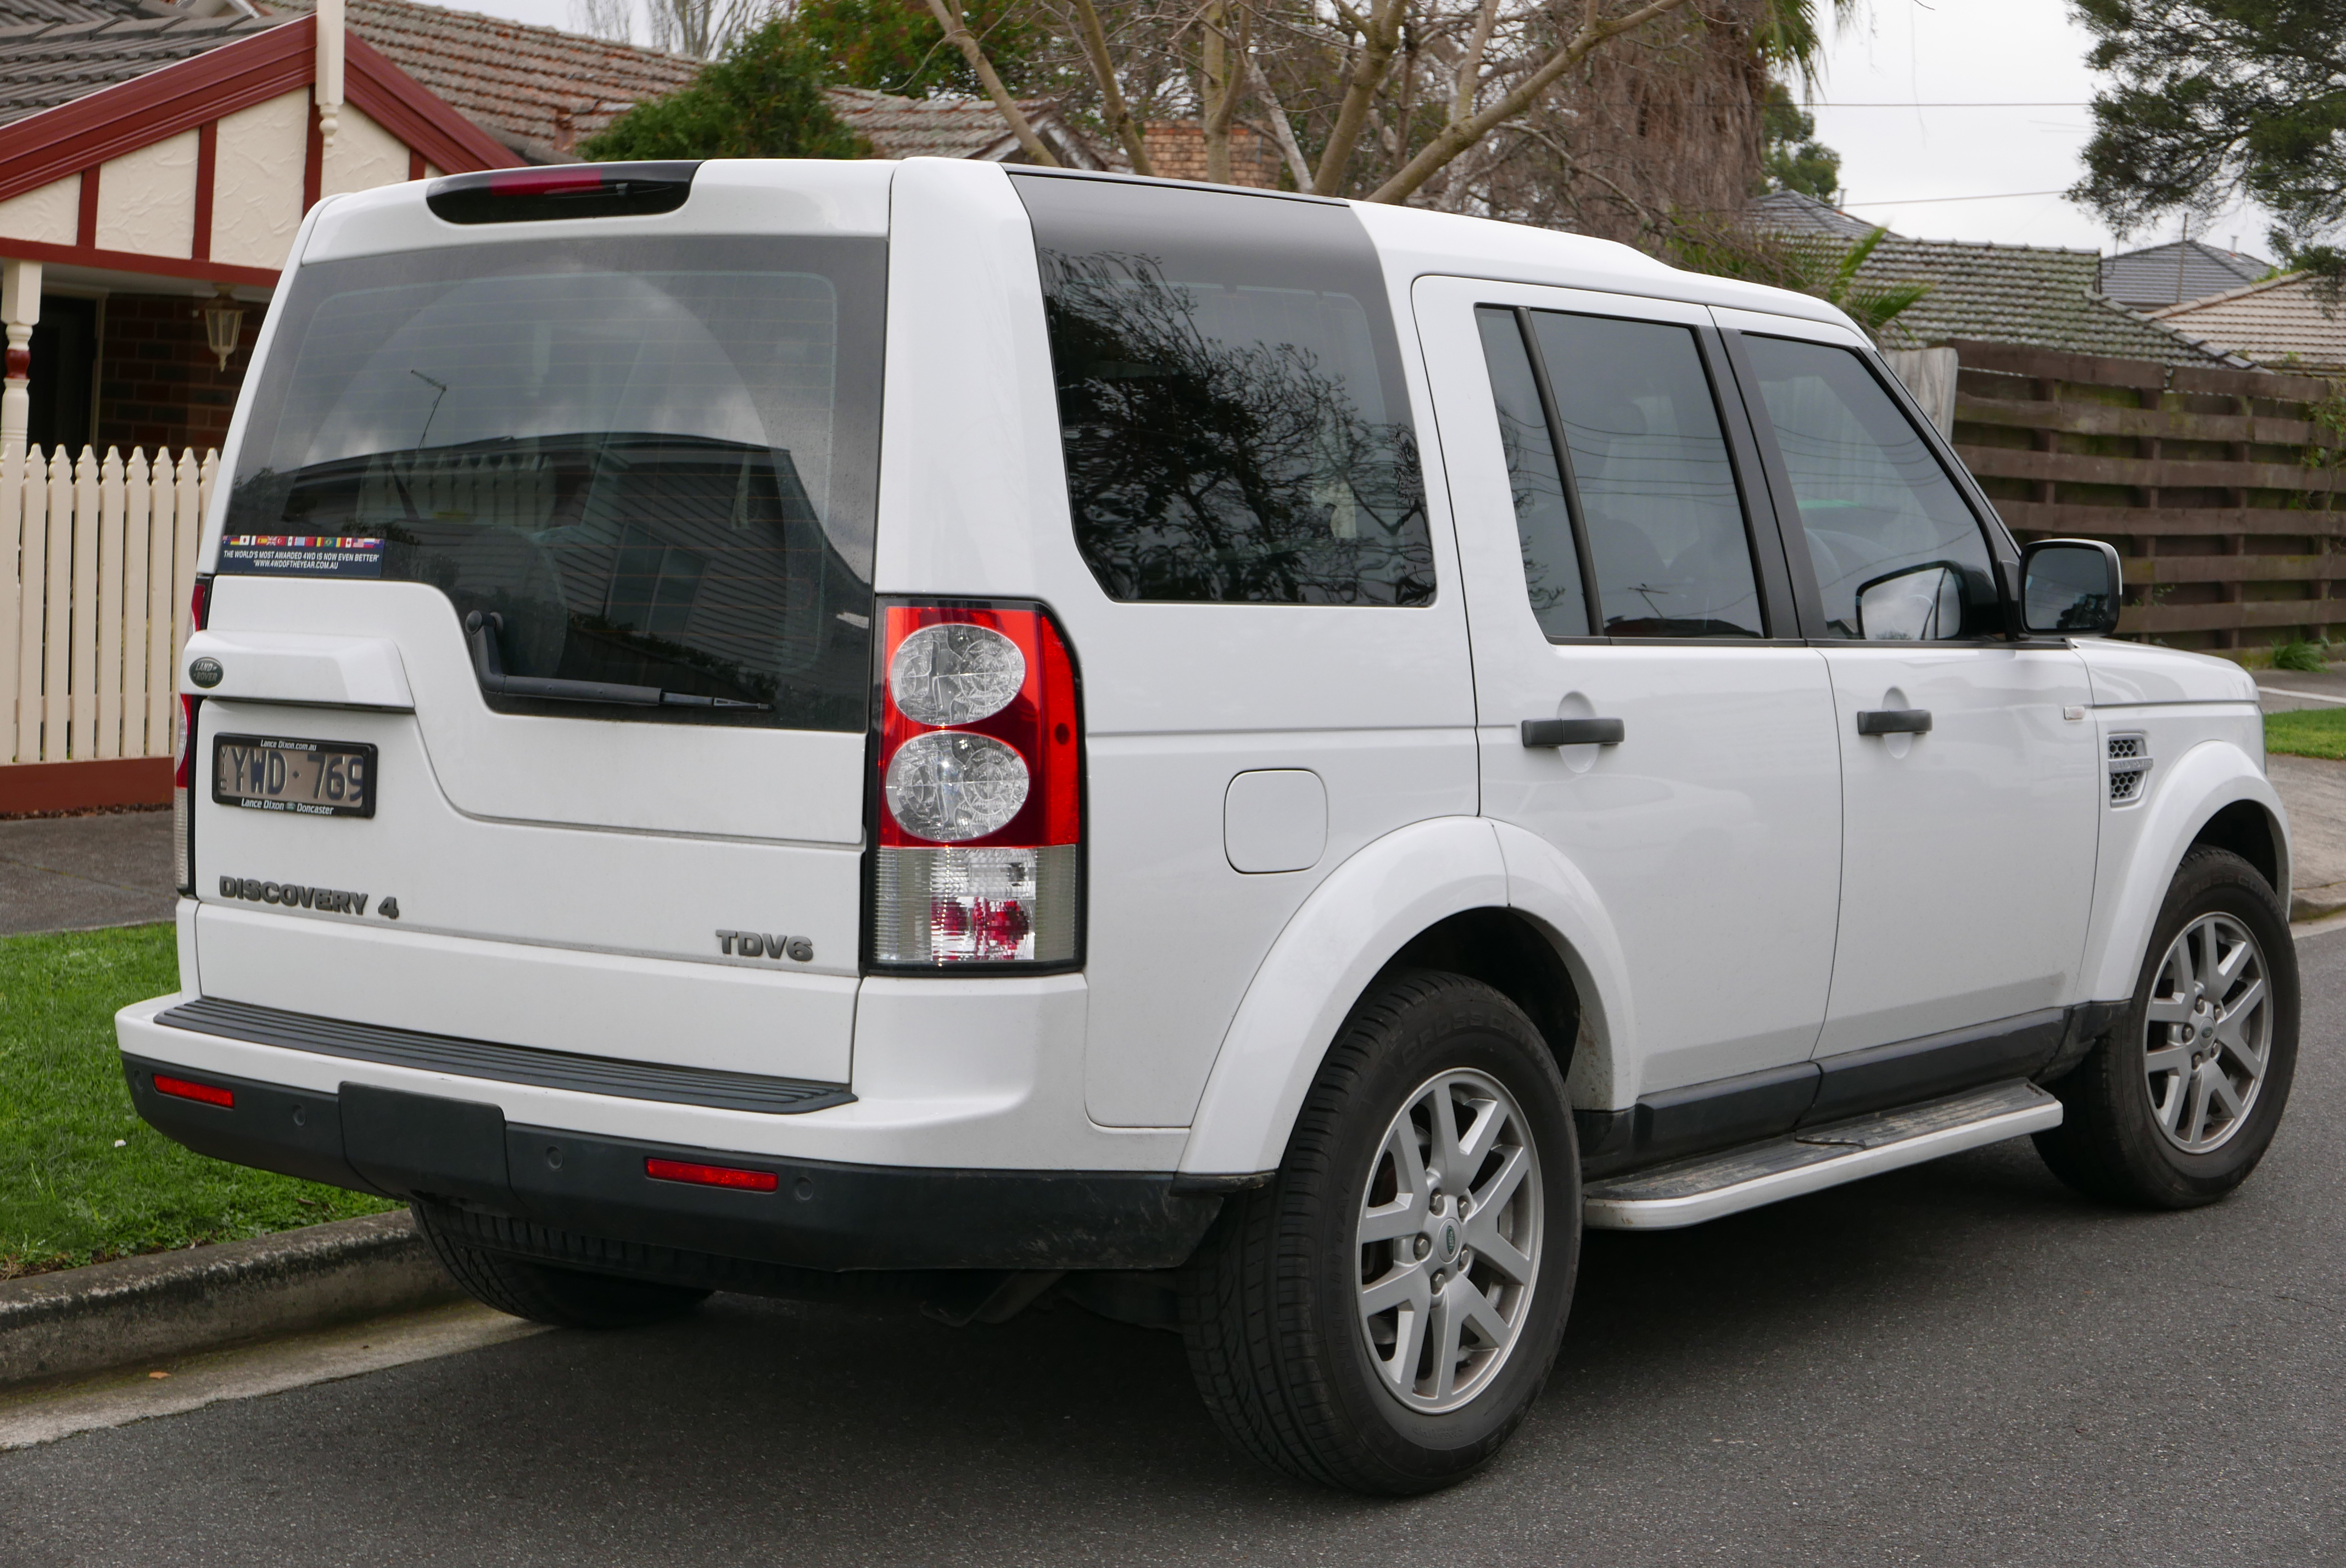 file 2012 land rover discovery 4 l319 my12 tdv6 wagon 2015 08 07 wikimedia commons. Black Bedroom Furniture Sets. Home Design Ideas